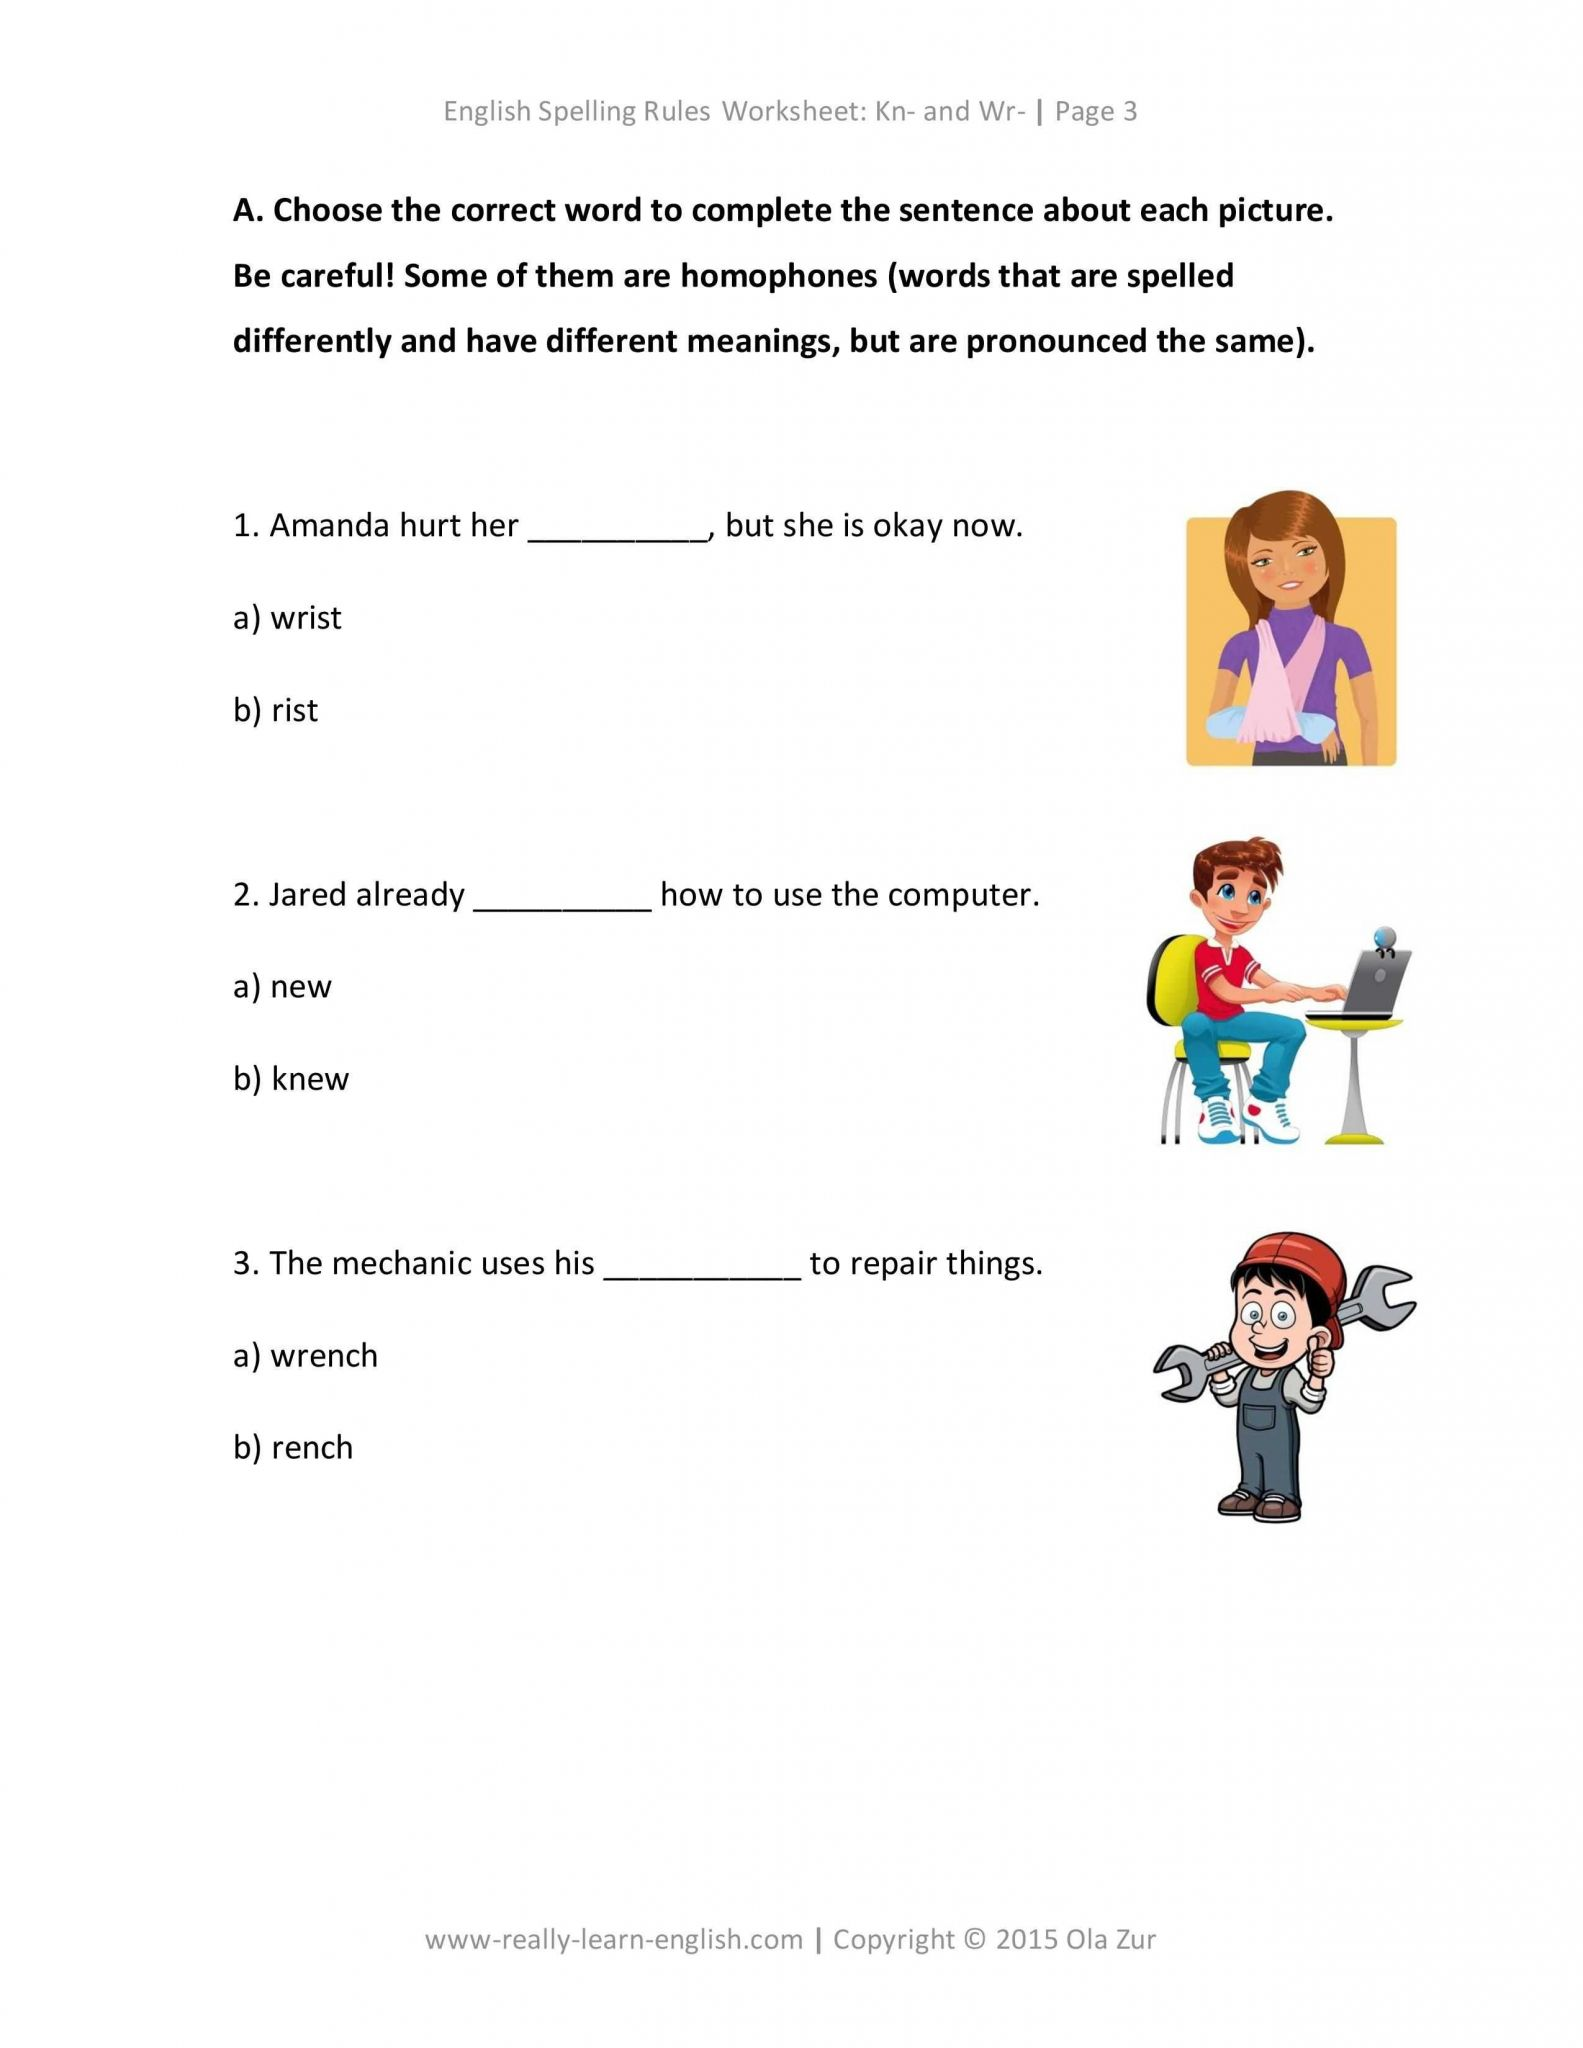 Special Right Triangles Worksheet Answer Key with Work together with the Plete List Of English Spelling Rules Lesson 3 Kn and Wr